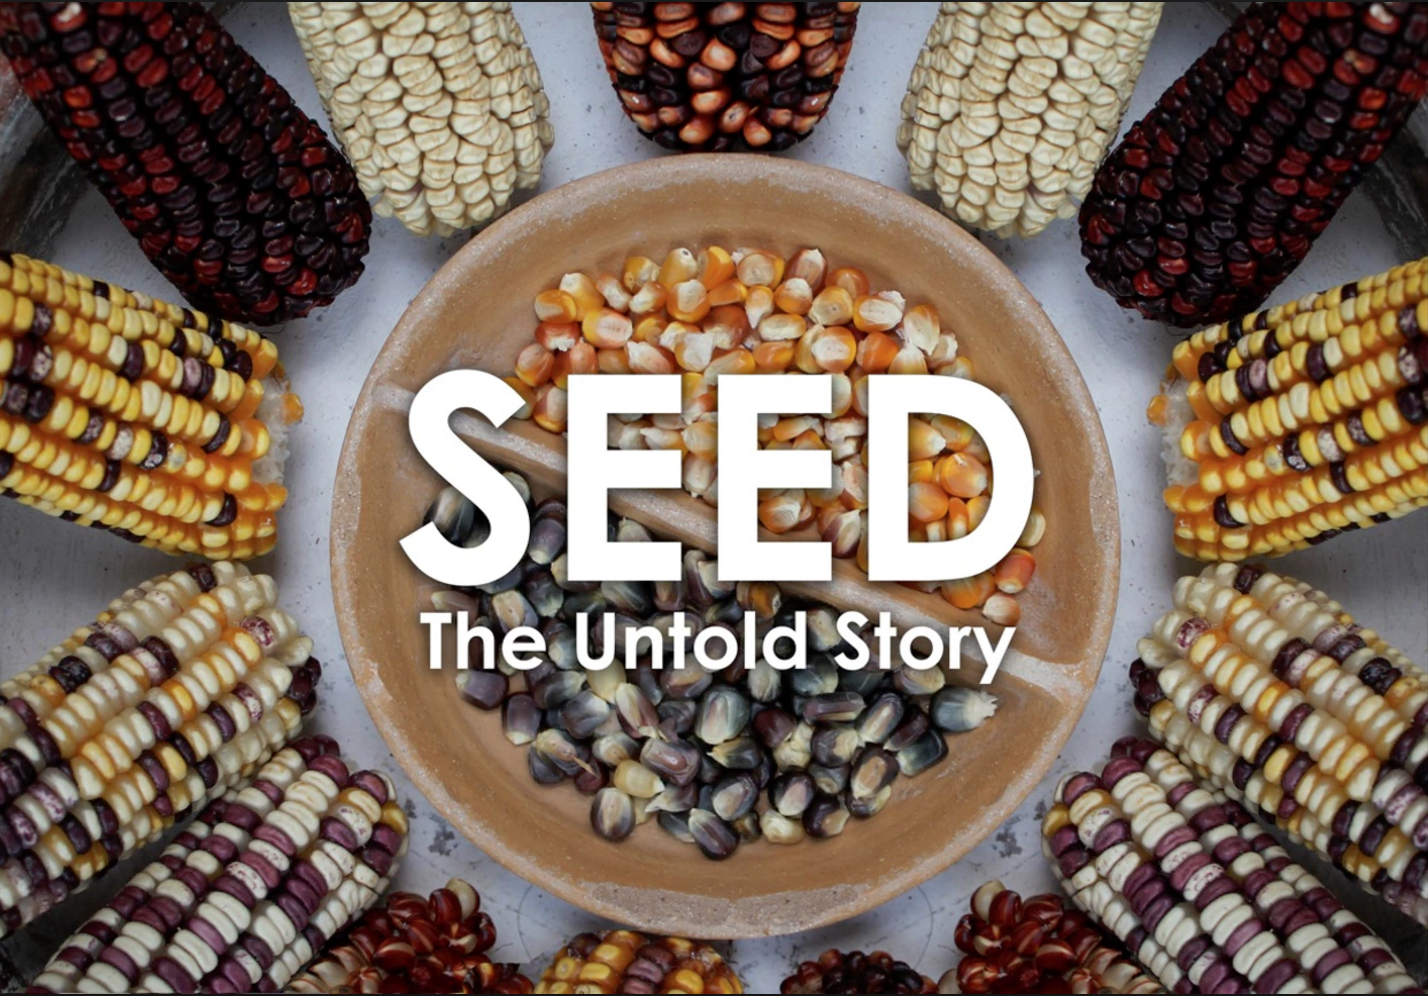 Image of the movie Seed: The Untold Story